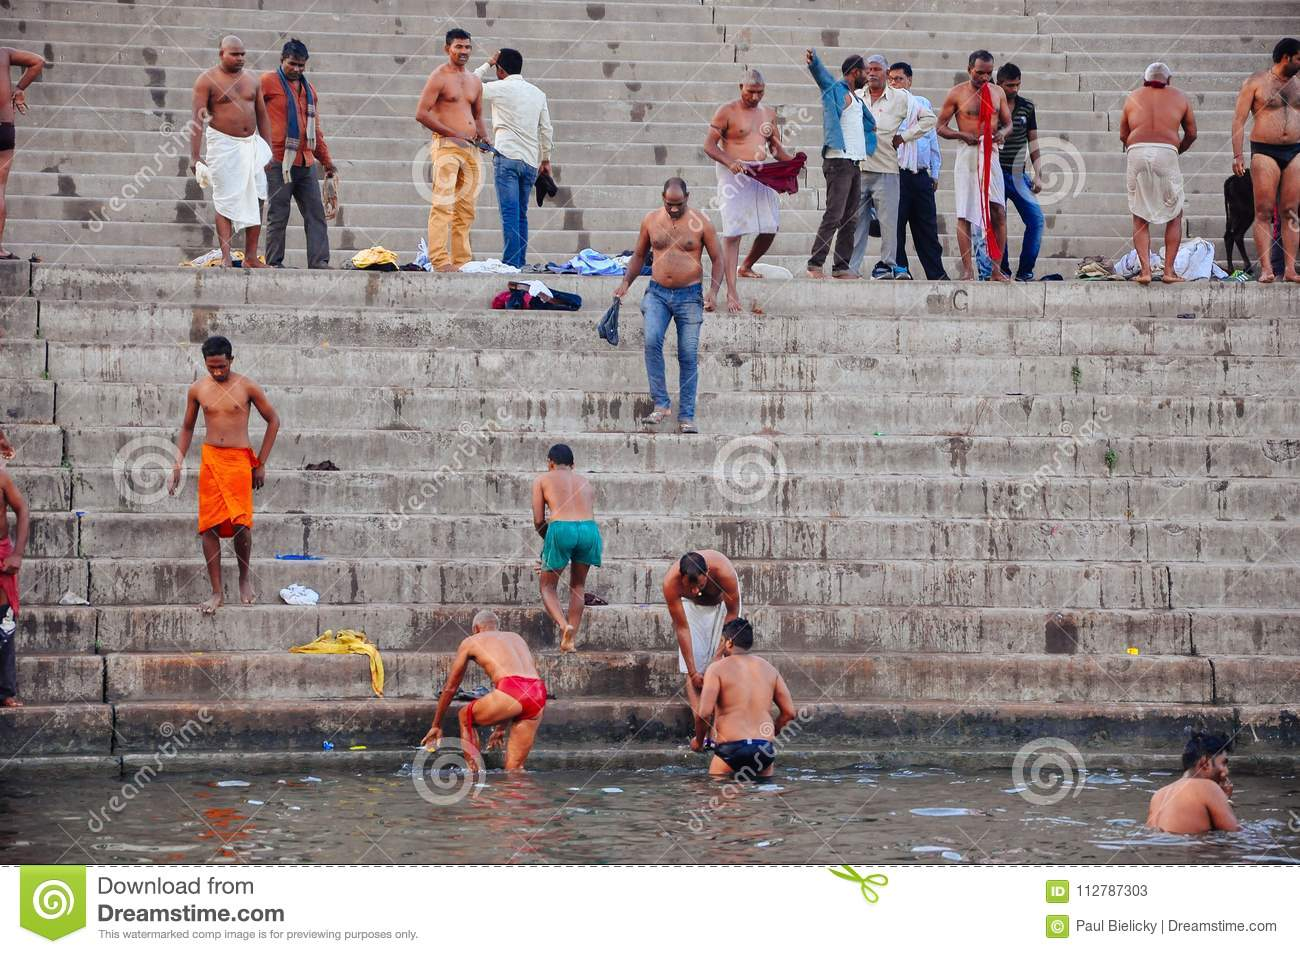 Locals having a bath in Varanasi, India.